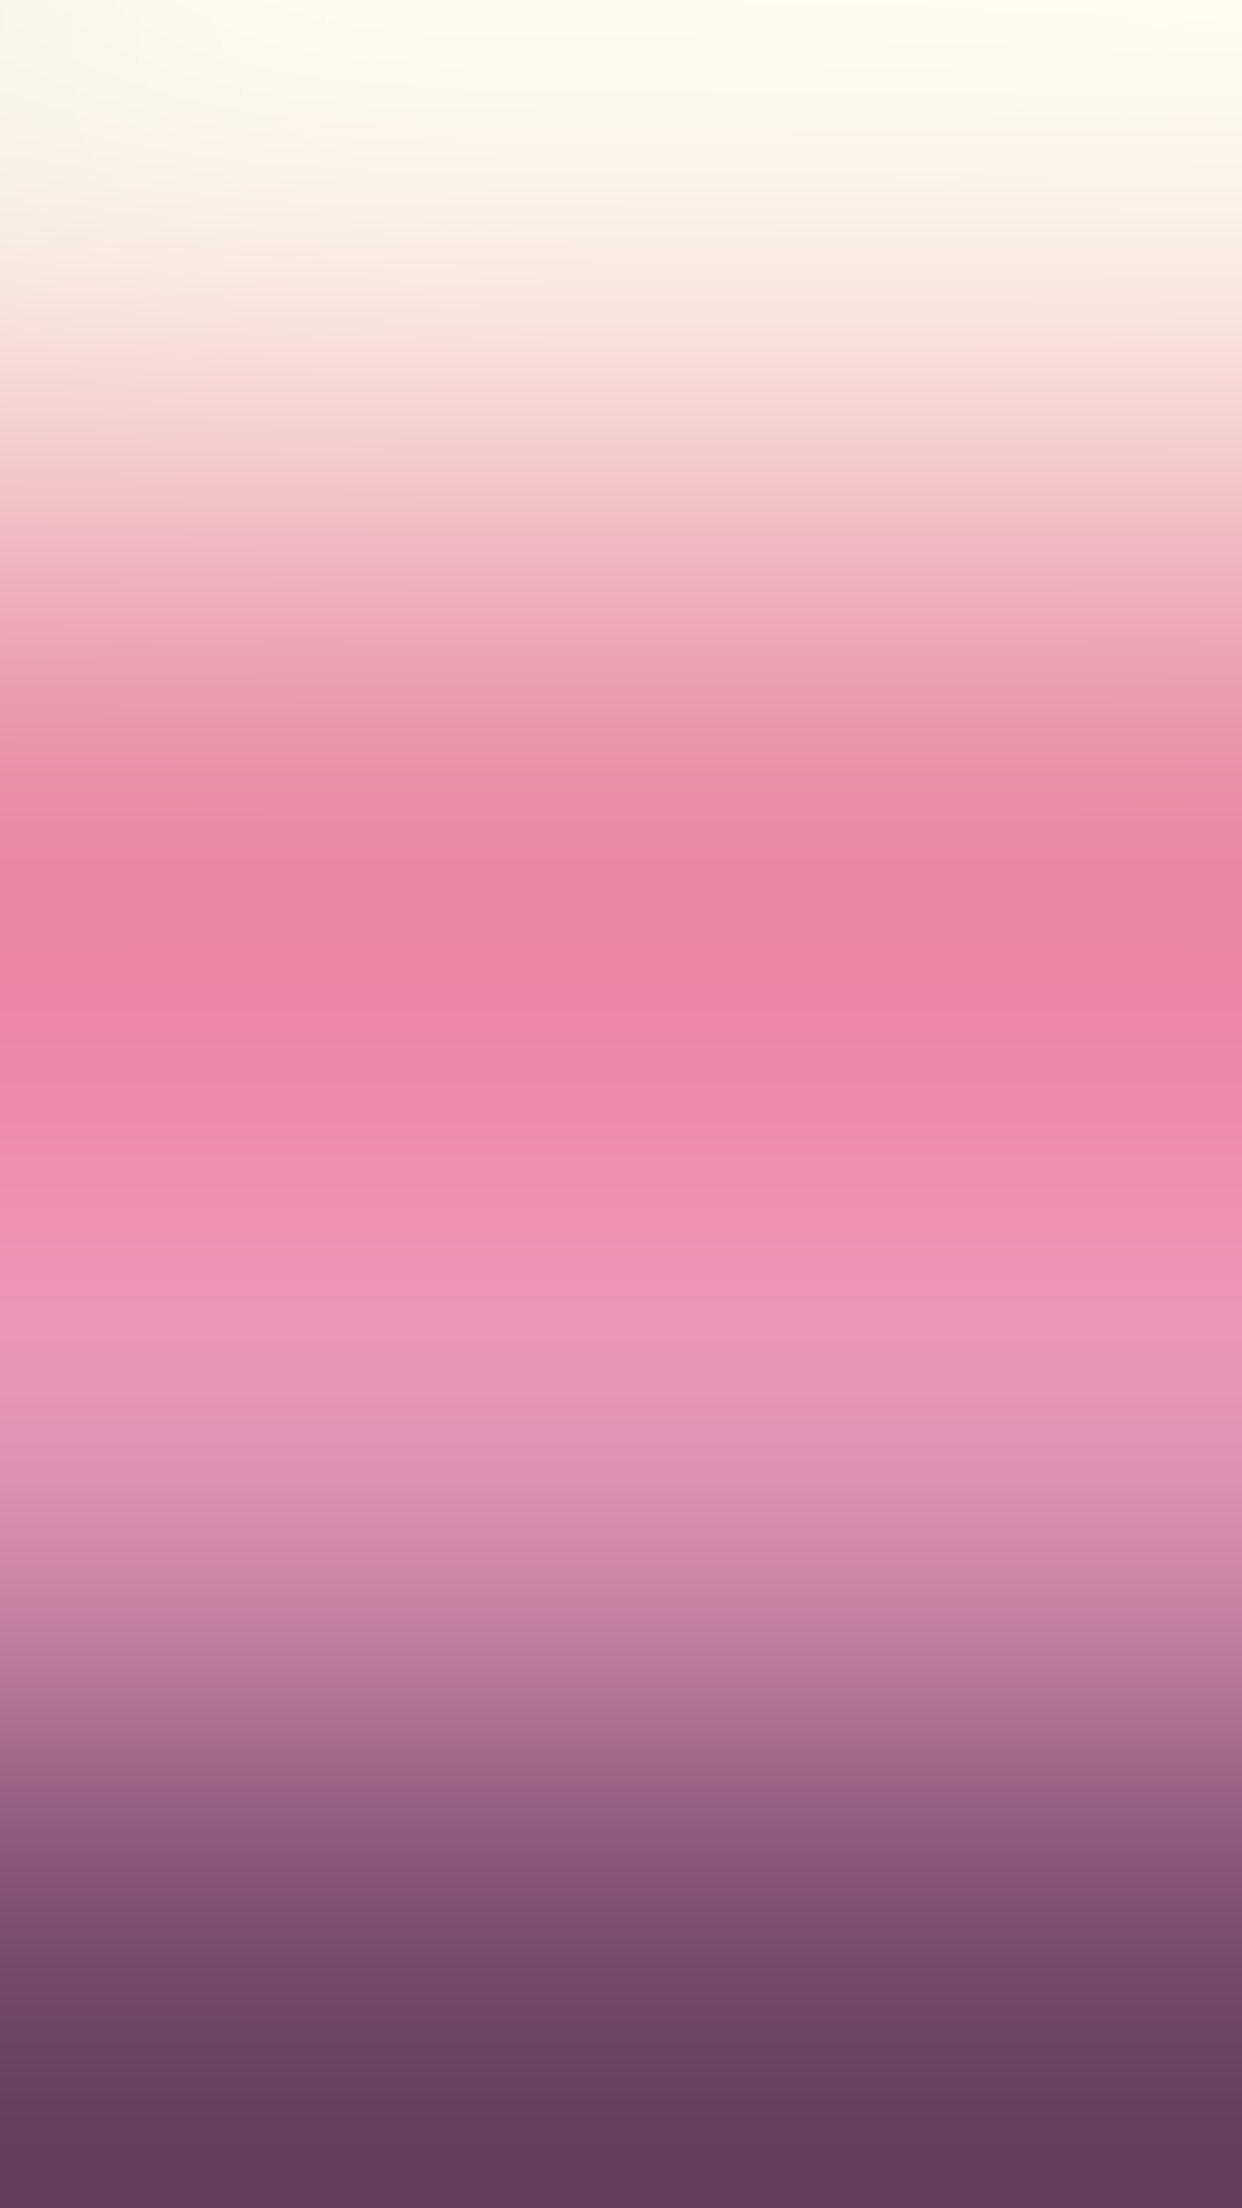 Soft Pink Background Psdgraphics White Background Wallpaper